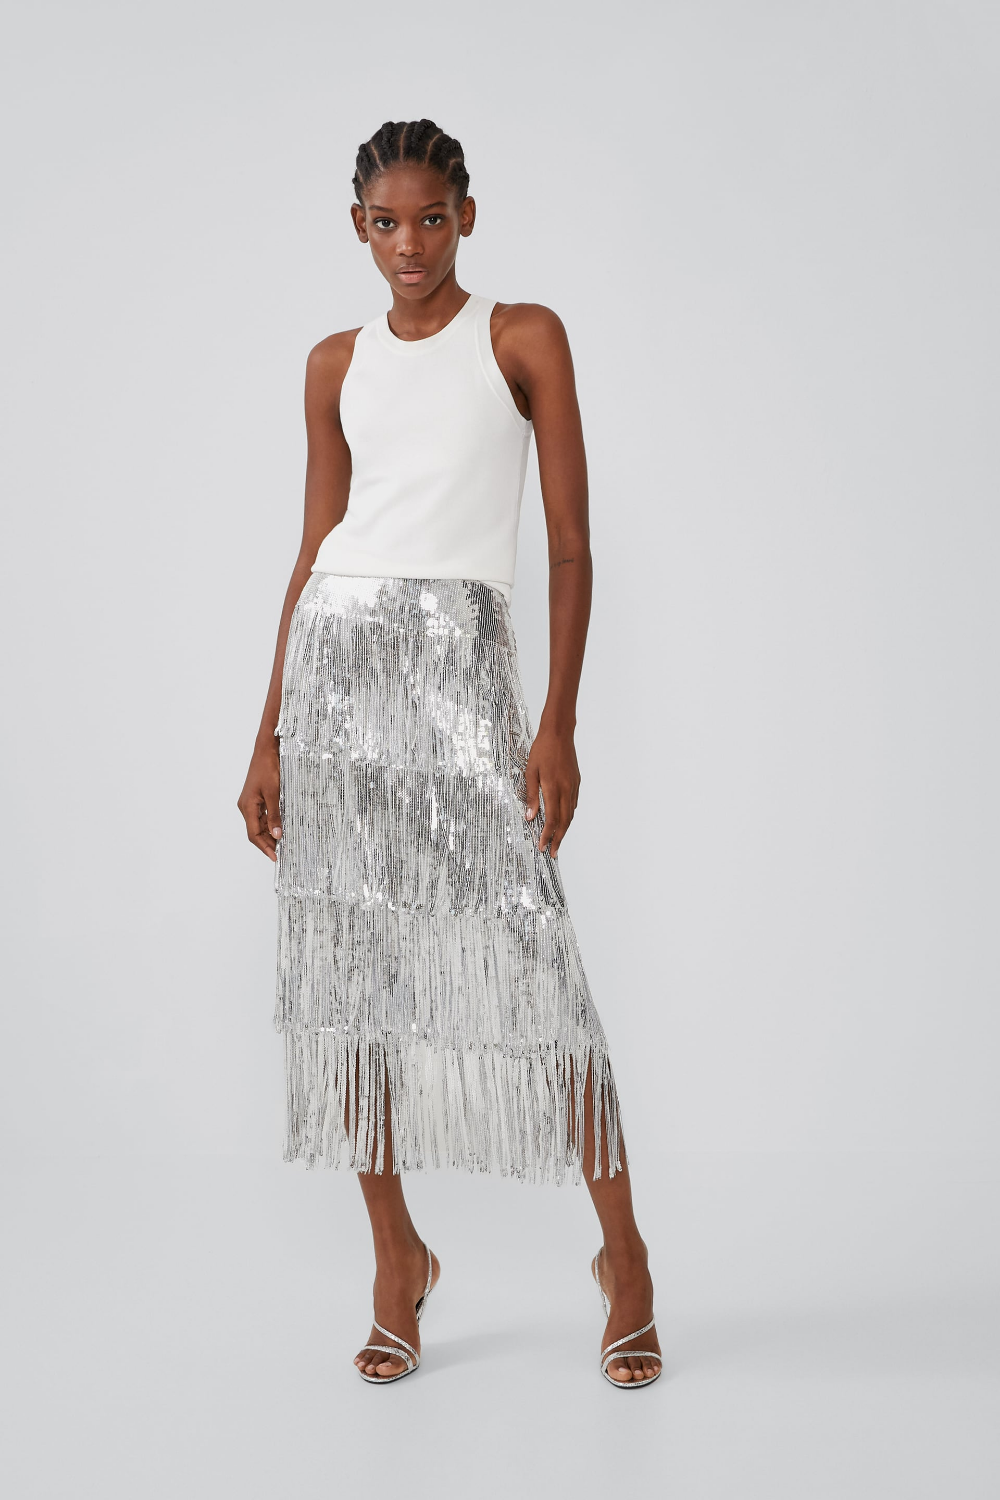 Limited edition fringed sequin skirt | Sequin skirt, Sequins